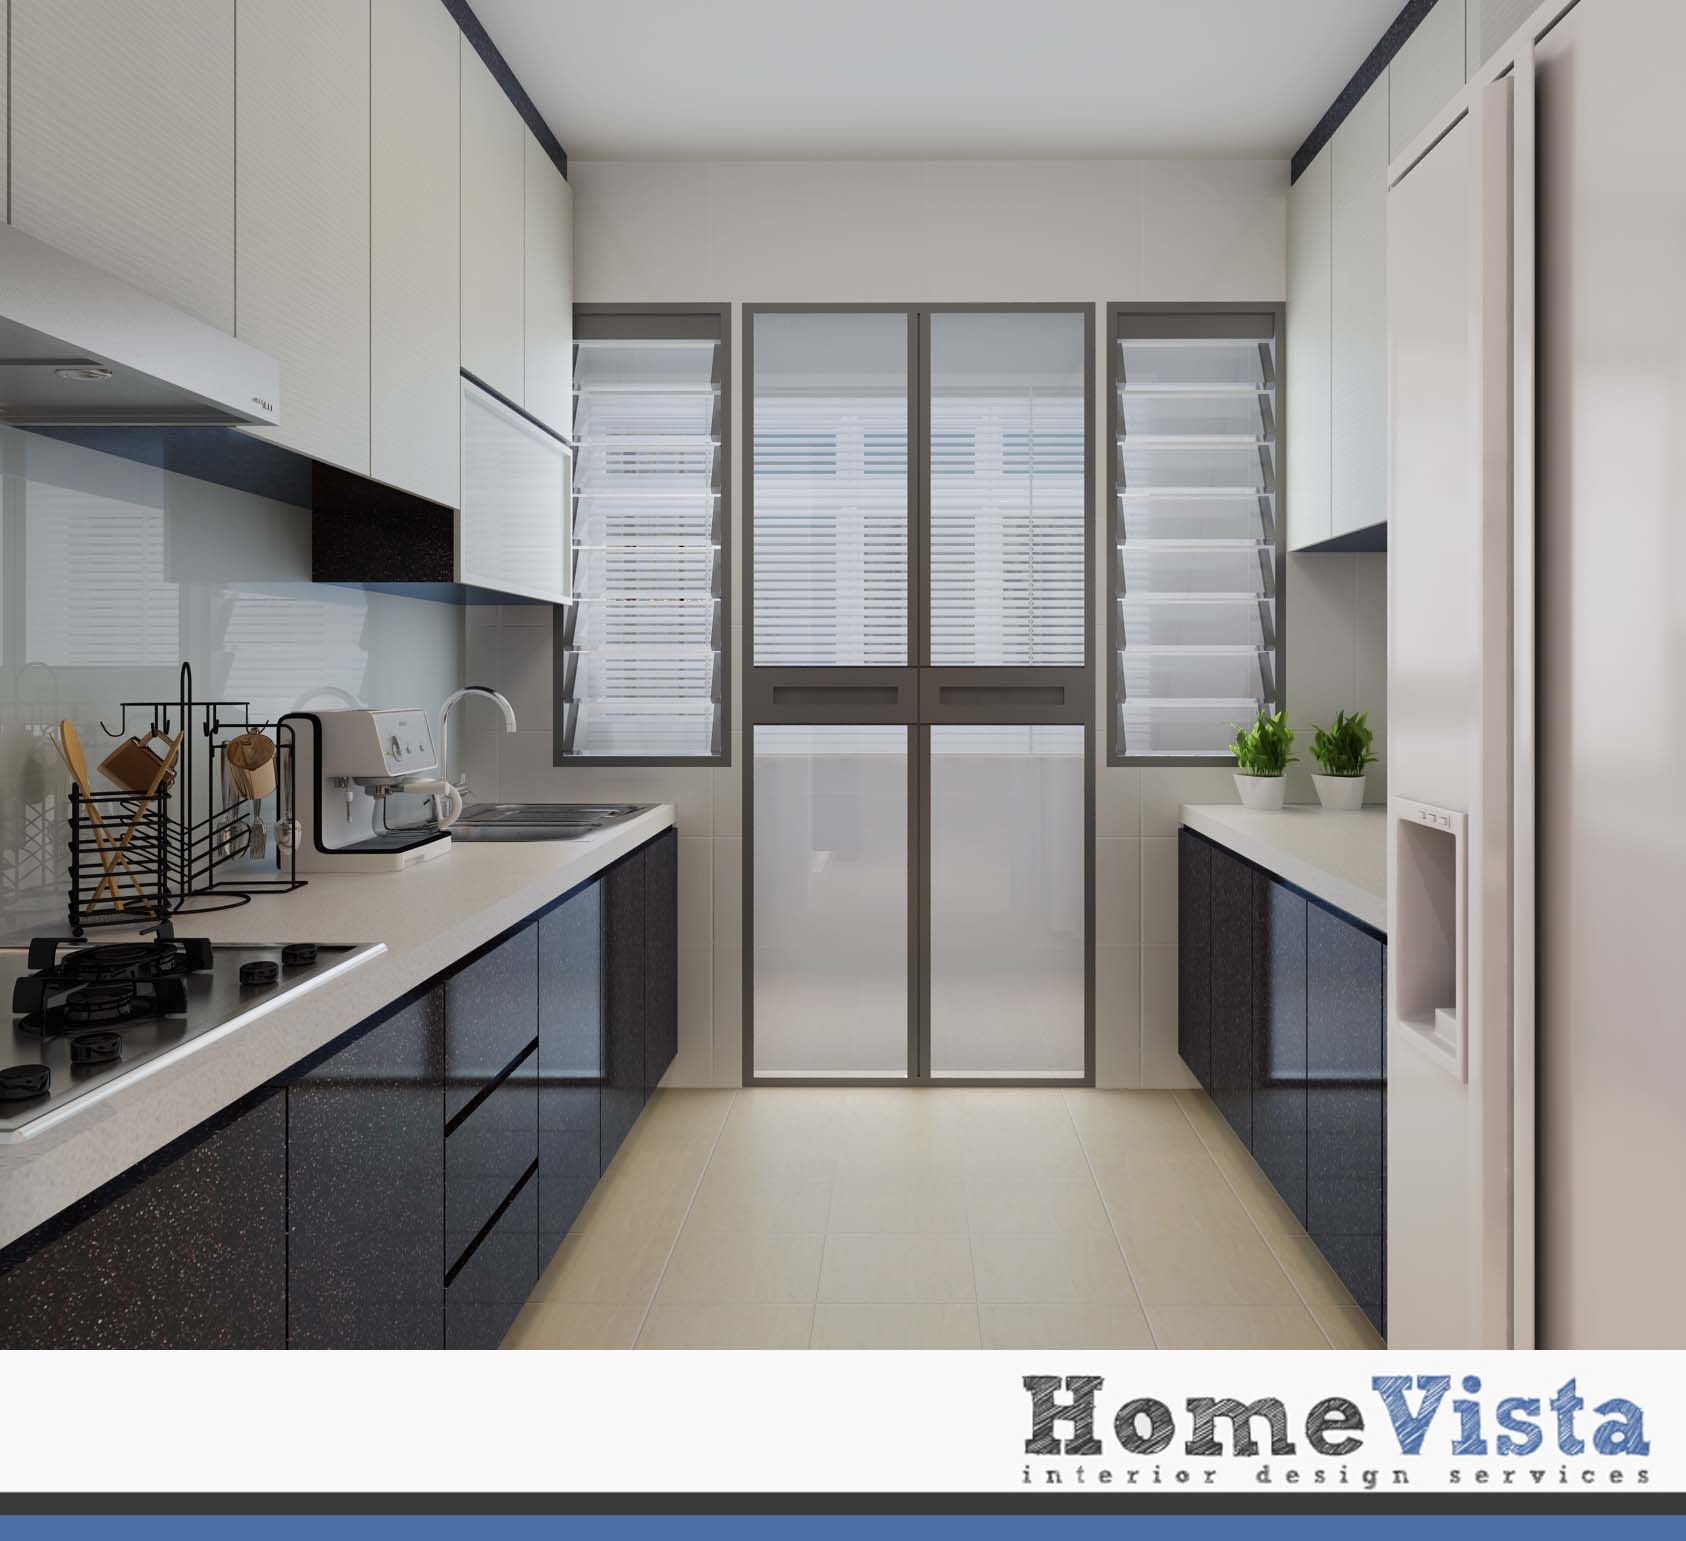 4 Room Bto Yishun Hdb Bto Homevista Kitchen Design Ideas Pinterest Kitchens Room And